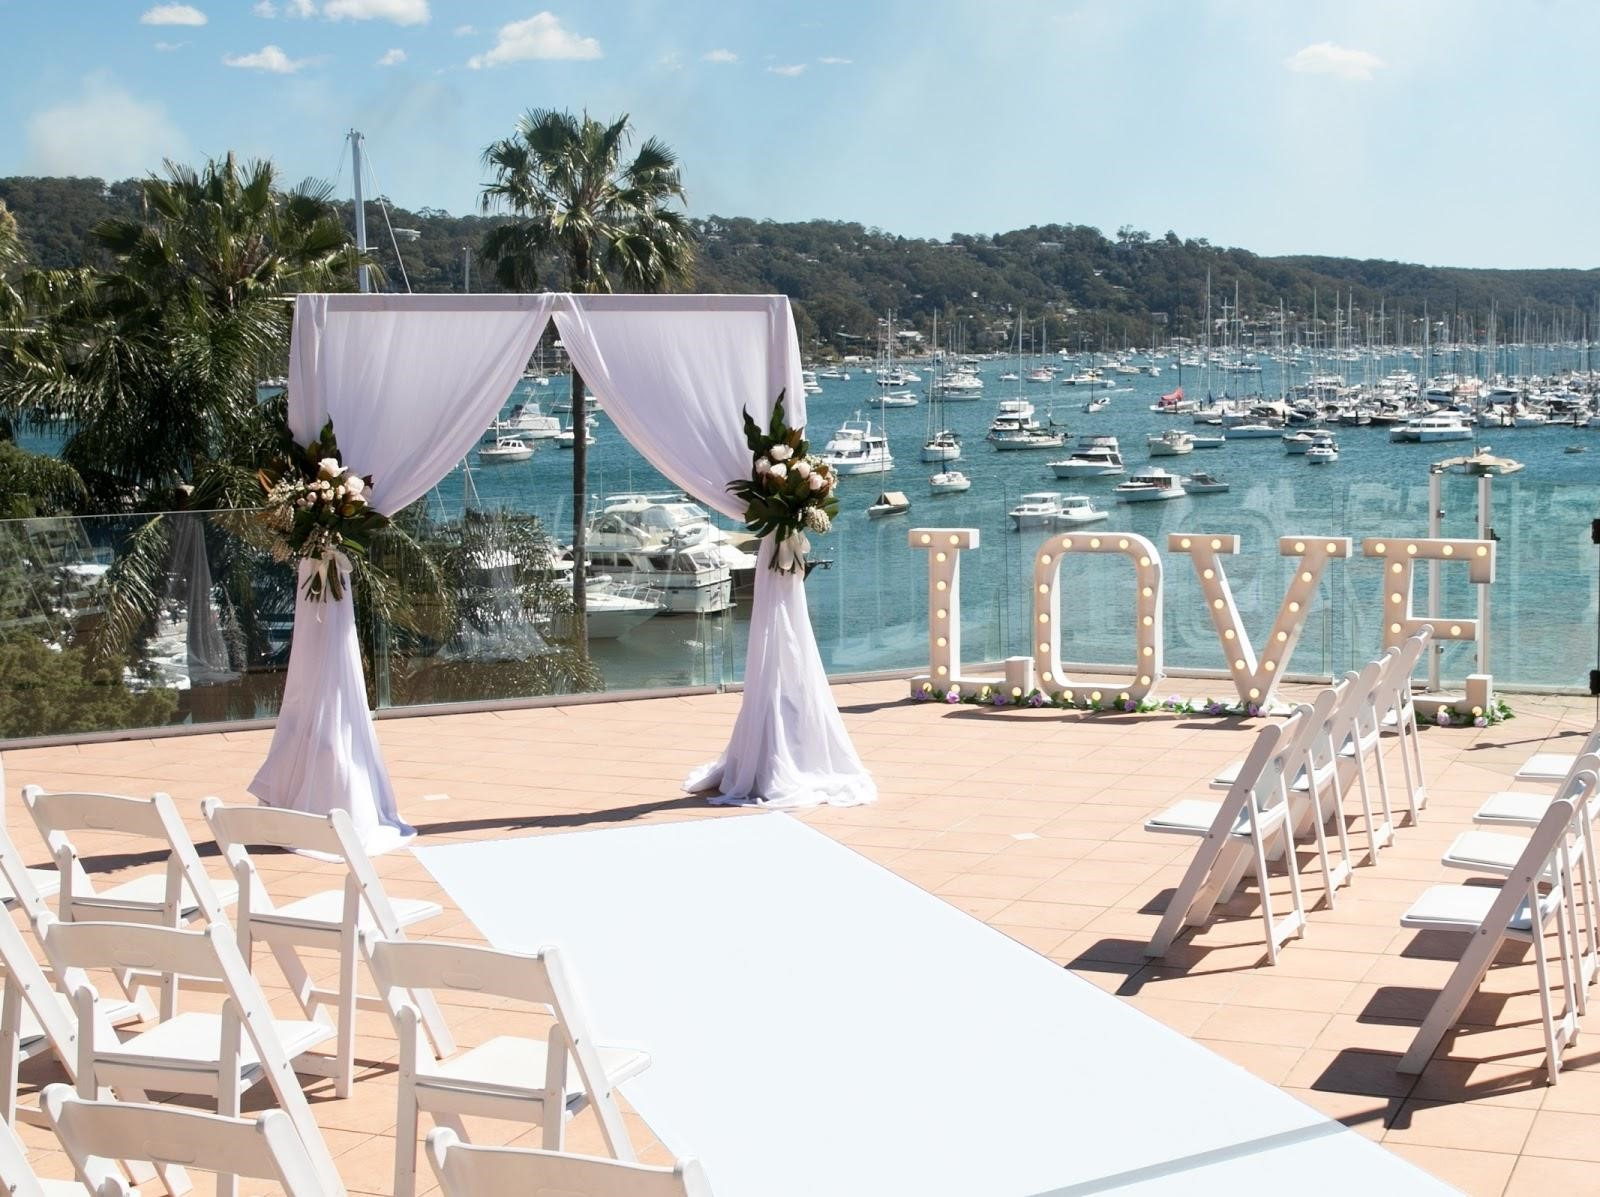 4 Things You Need To Know When Planning A Destination Wedding